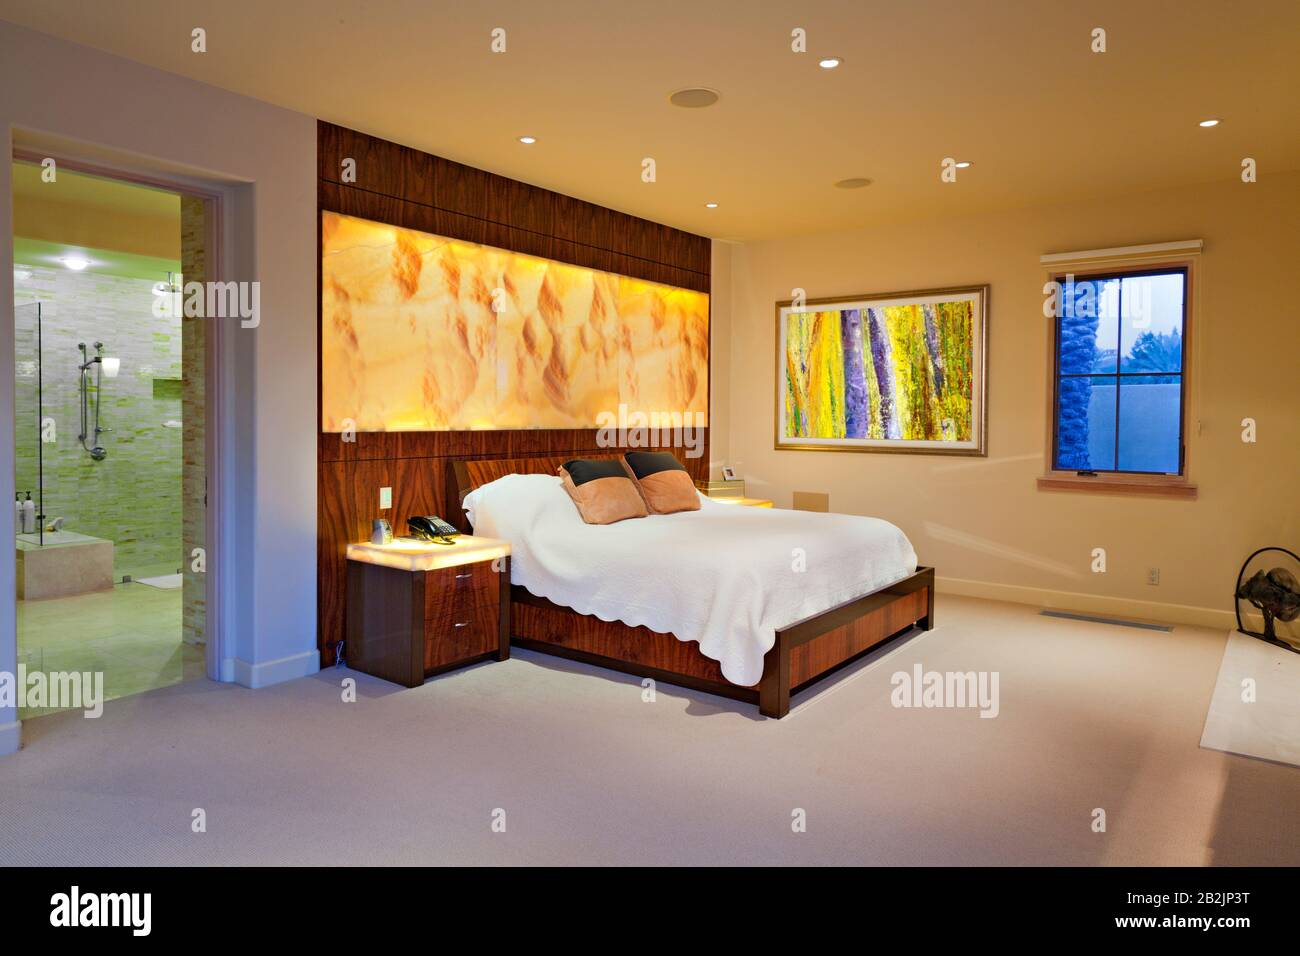 Modern Master Bedroom Interior Design In Luxurious Manor House Stock Photo Alamy